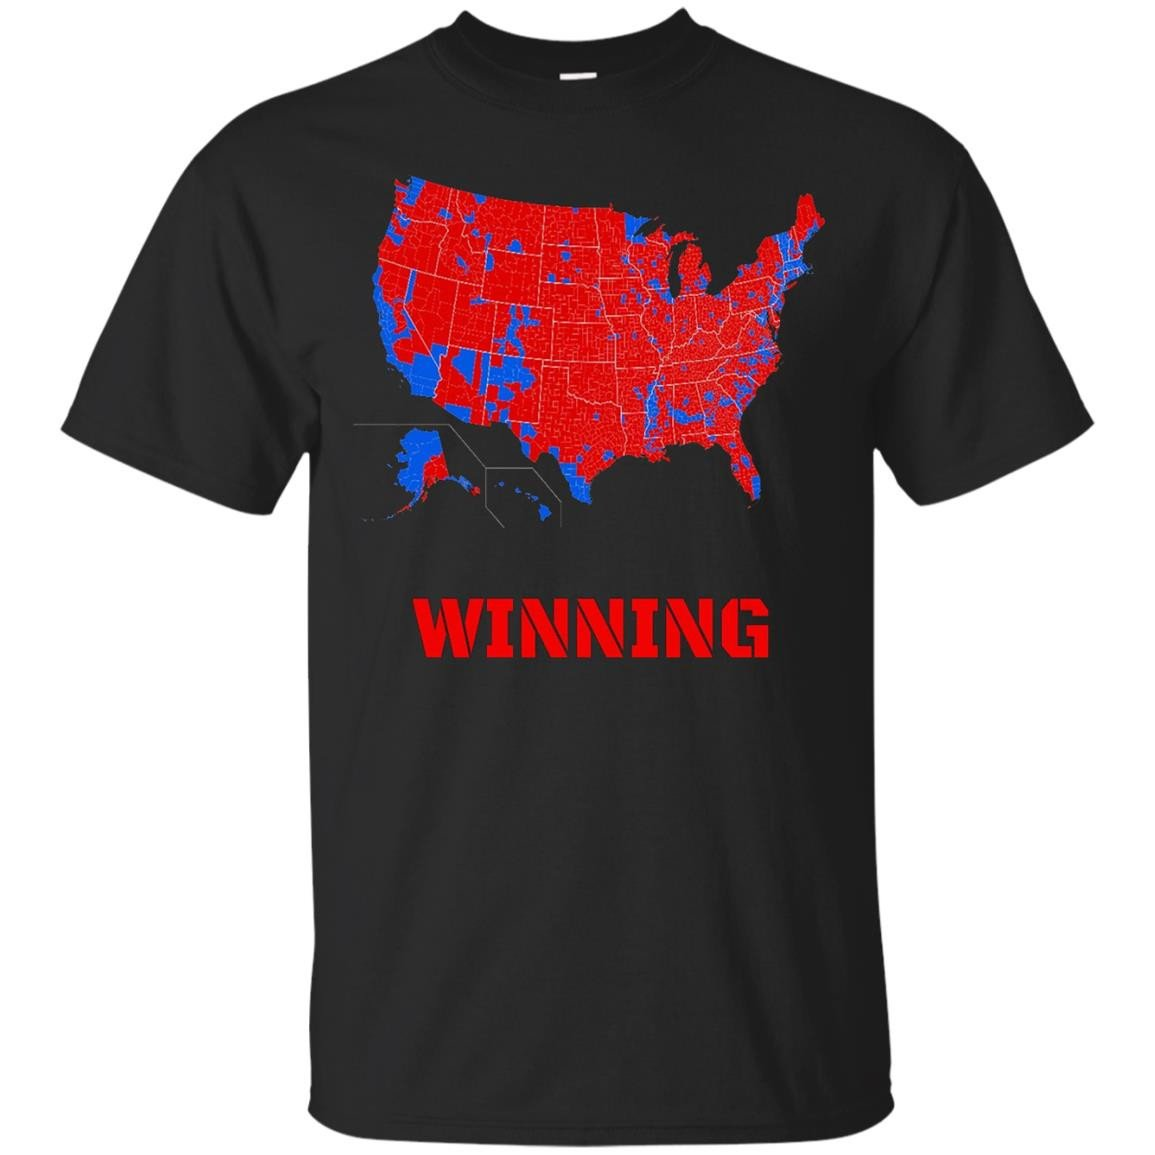 Donald Trump Winning Electoral Map T-Shirt - MAGA